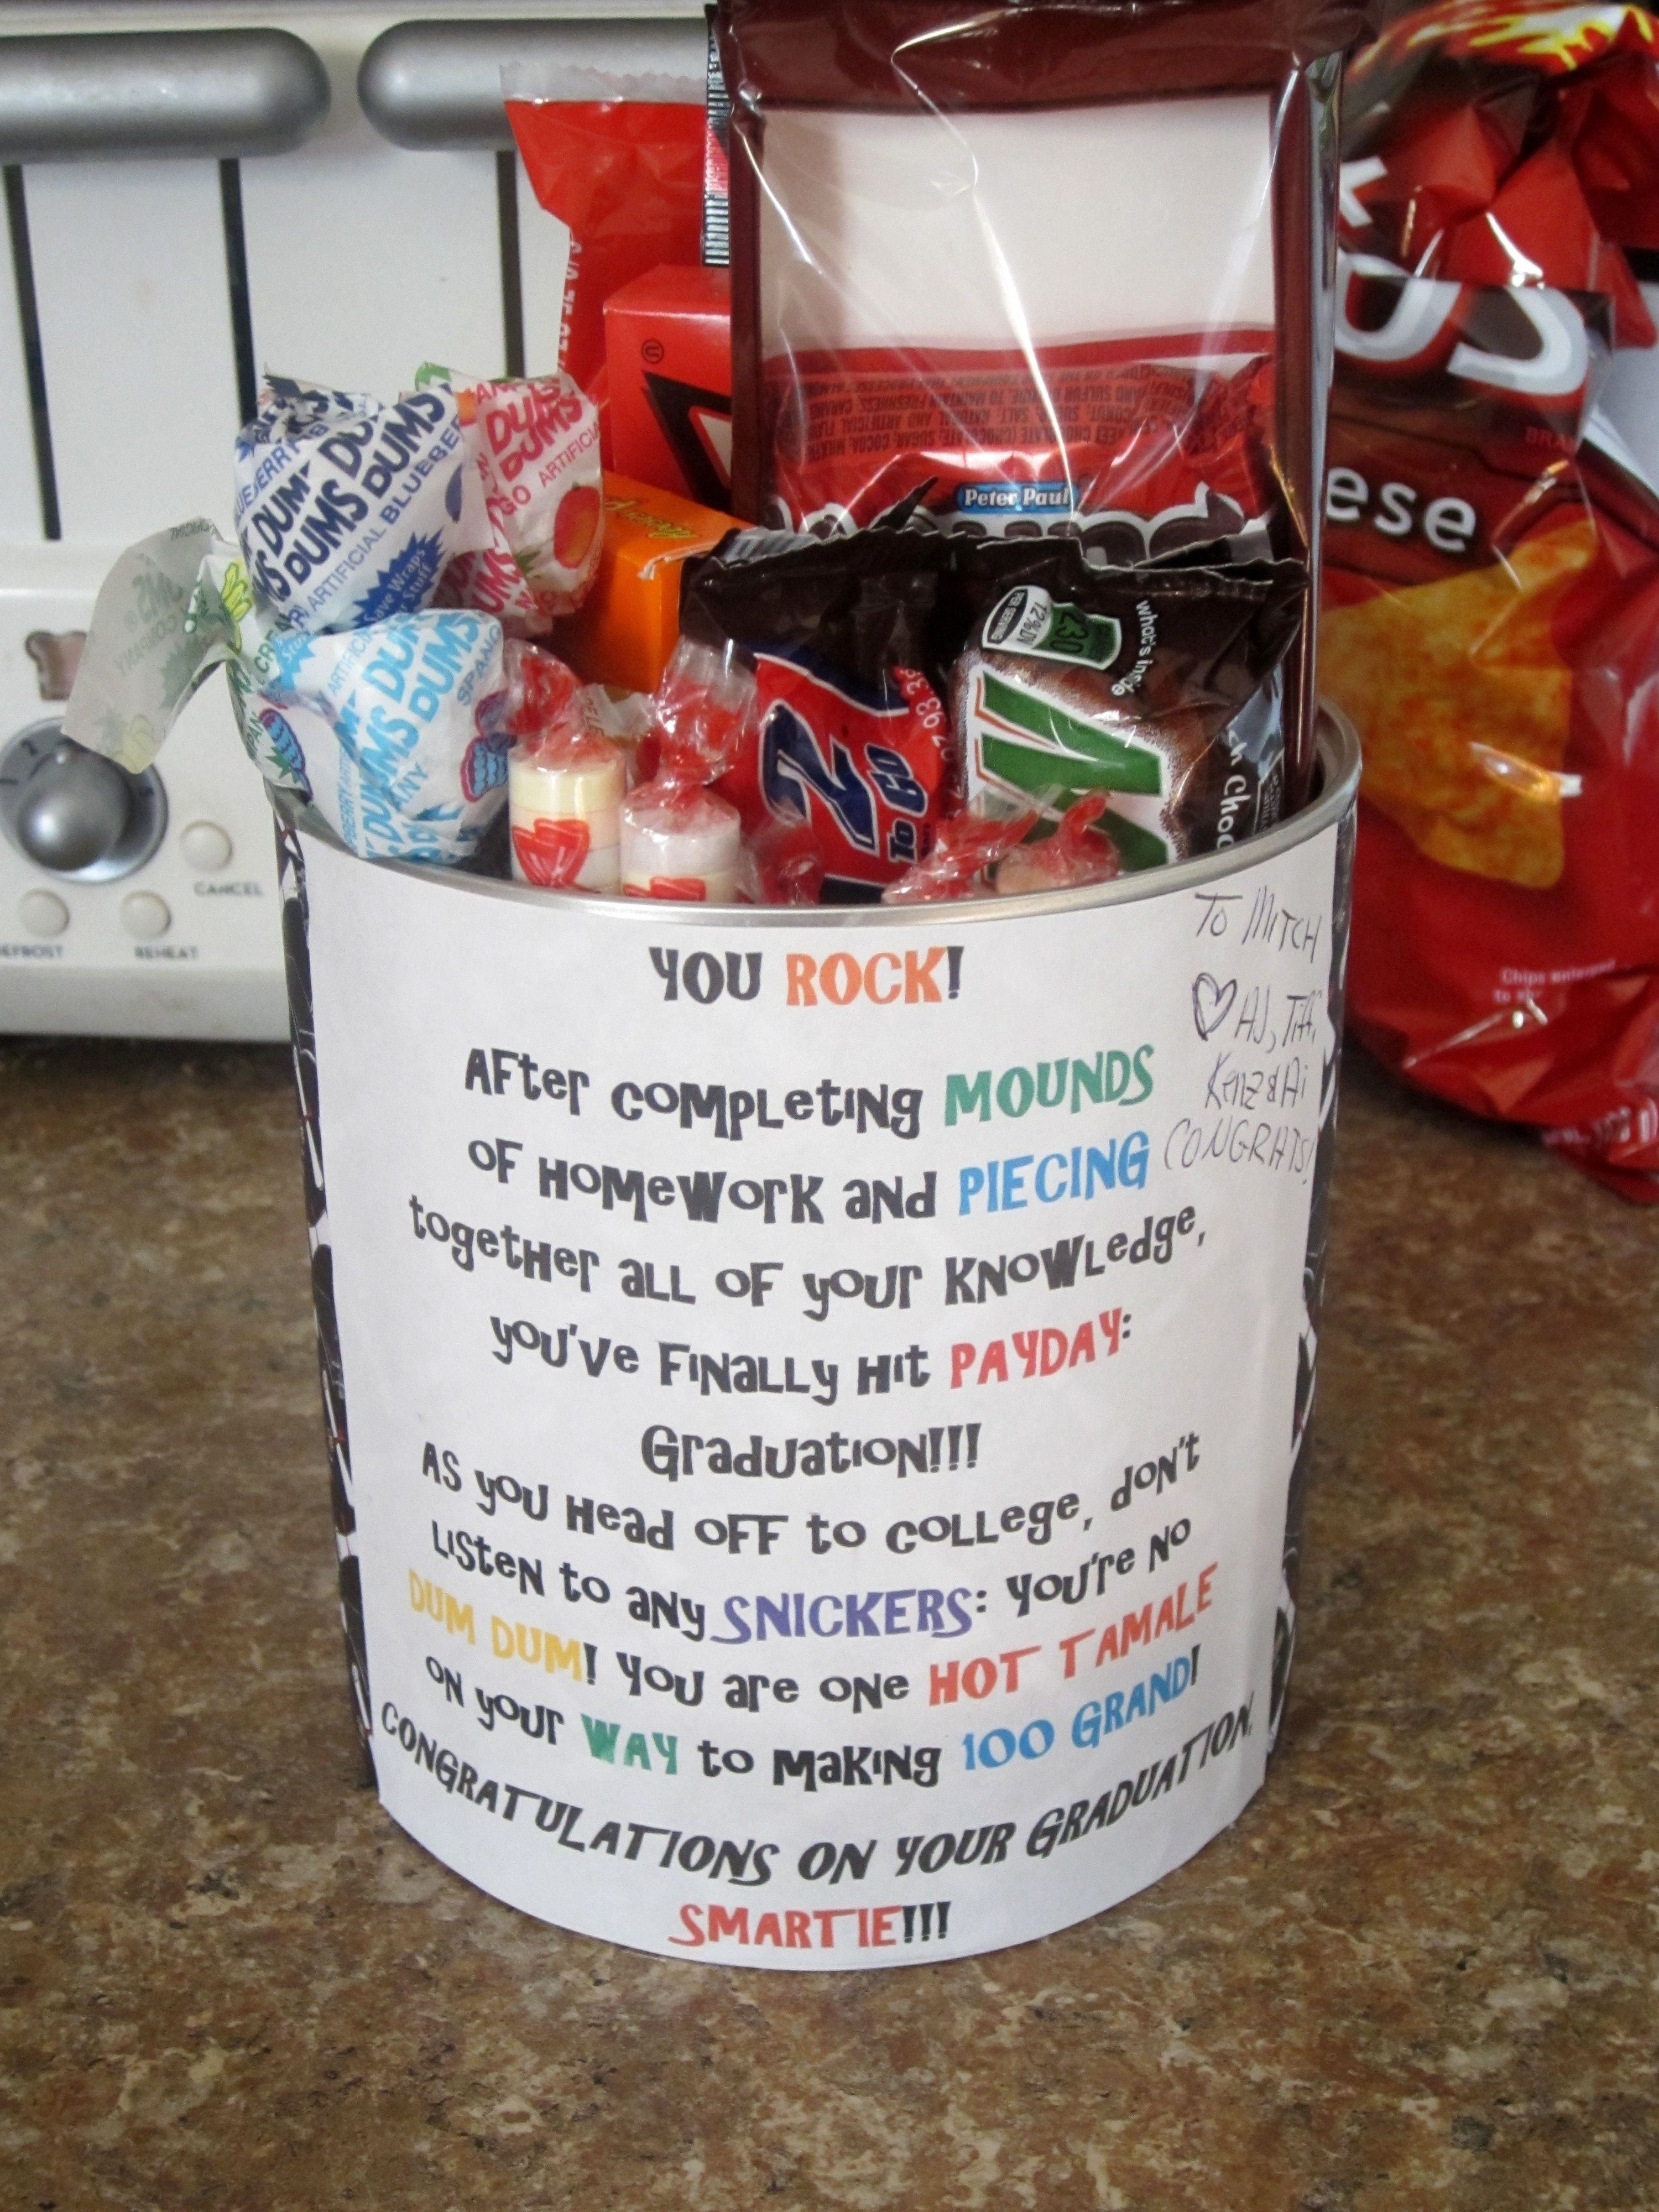 10 Trendy Graduation Gift Ideas For Friends cheap and cheerful graduation gifts graduation gifts grad gifts